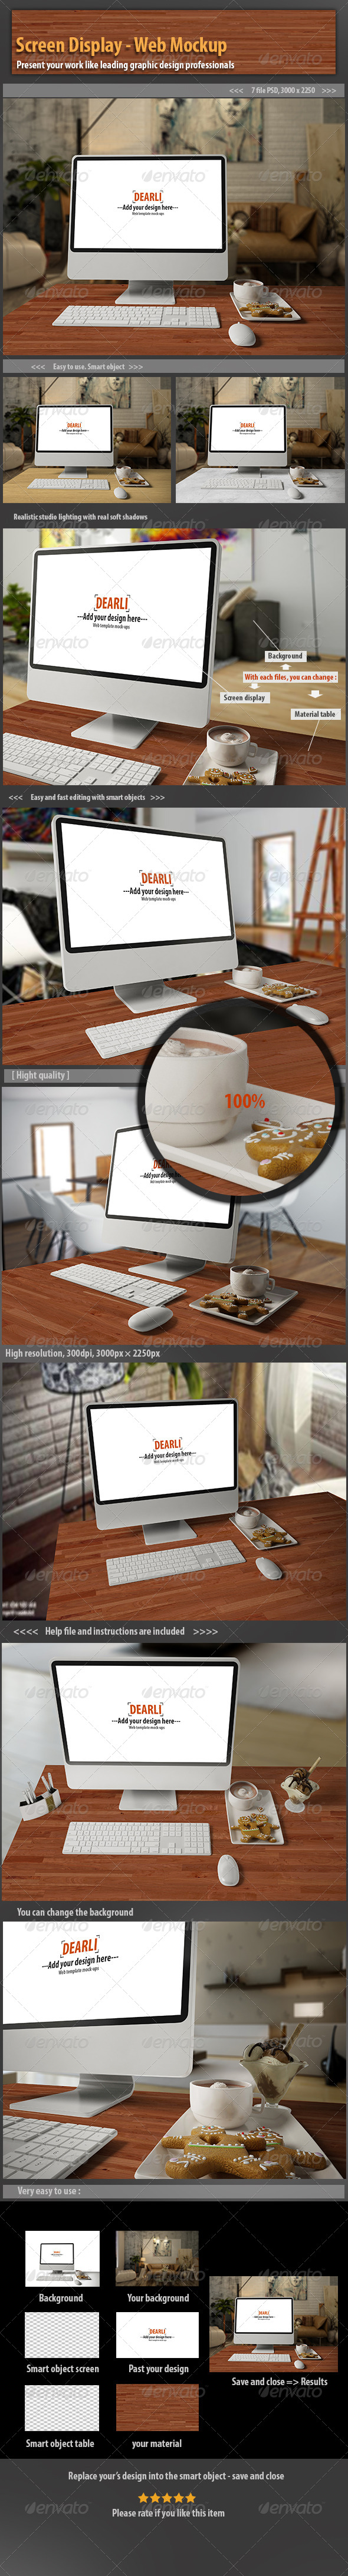 Screen Display- Web Mockup - Displays Product Mock-Ups